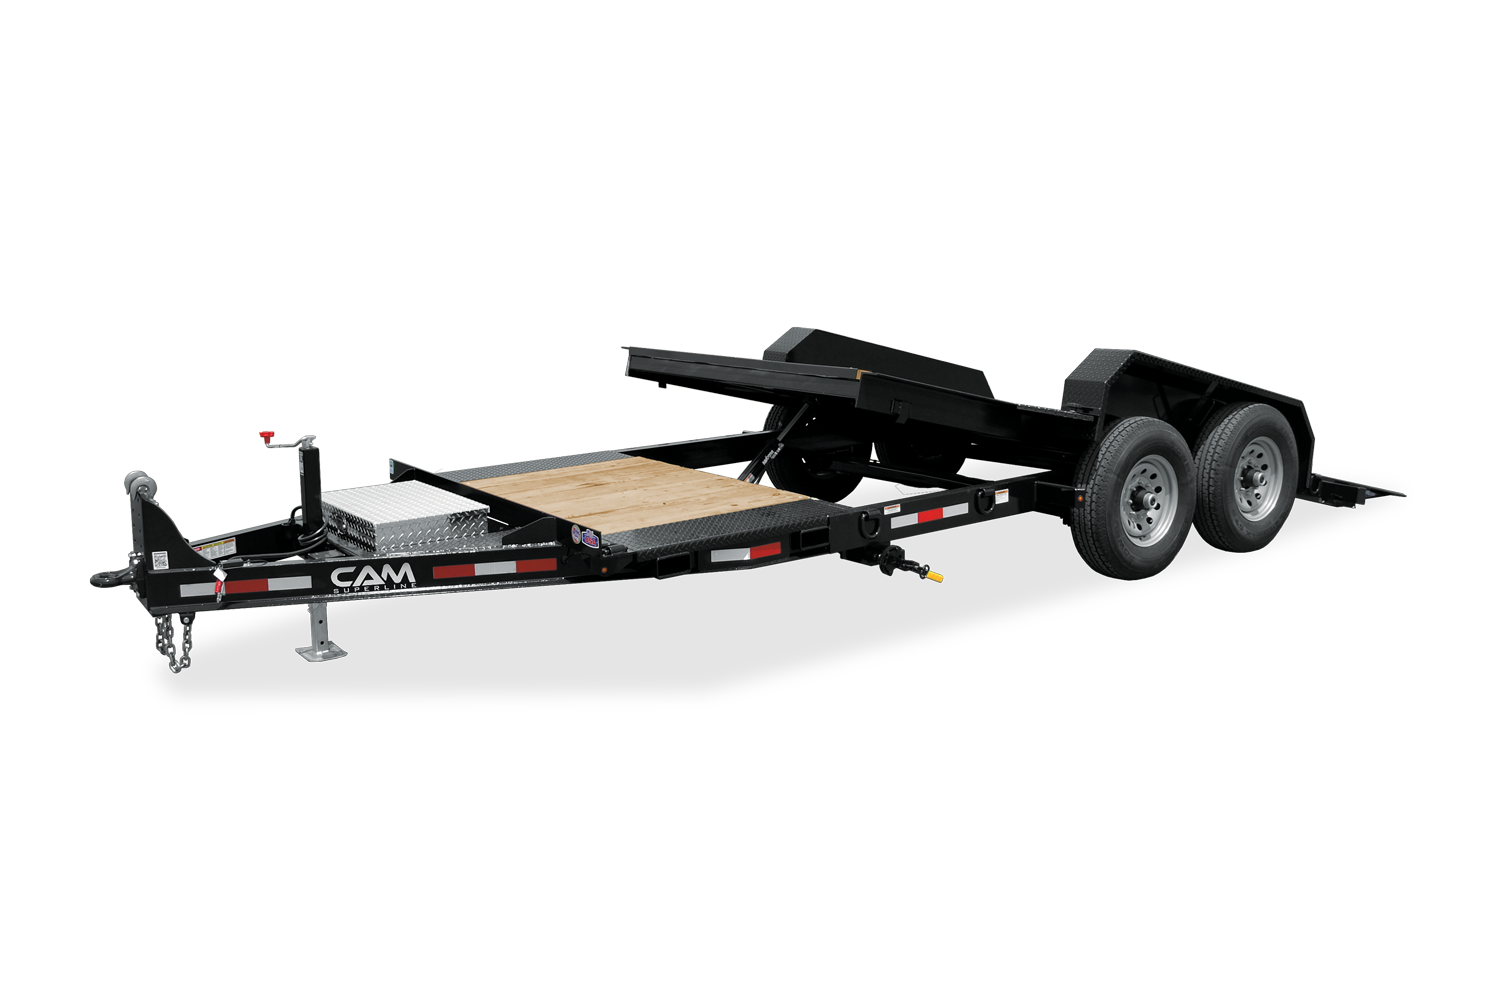 "2021 Cam Superline 8 Ton Split Tilt Extra Wide  83"" x 21' Long. 17' Tilting + 4' Stationary."